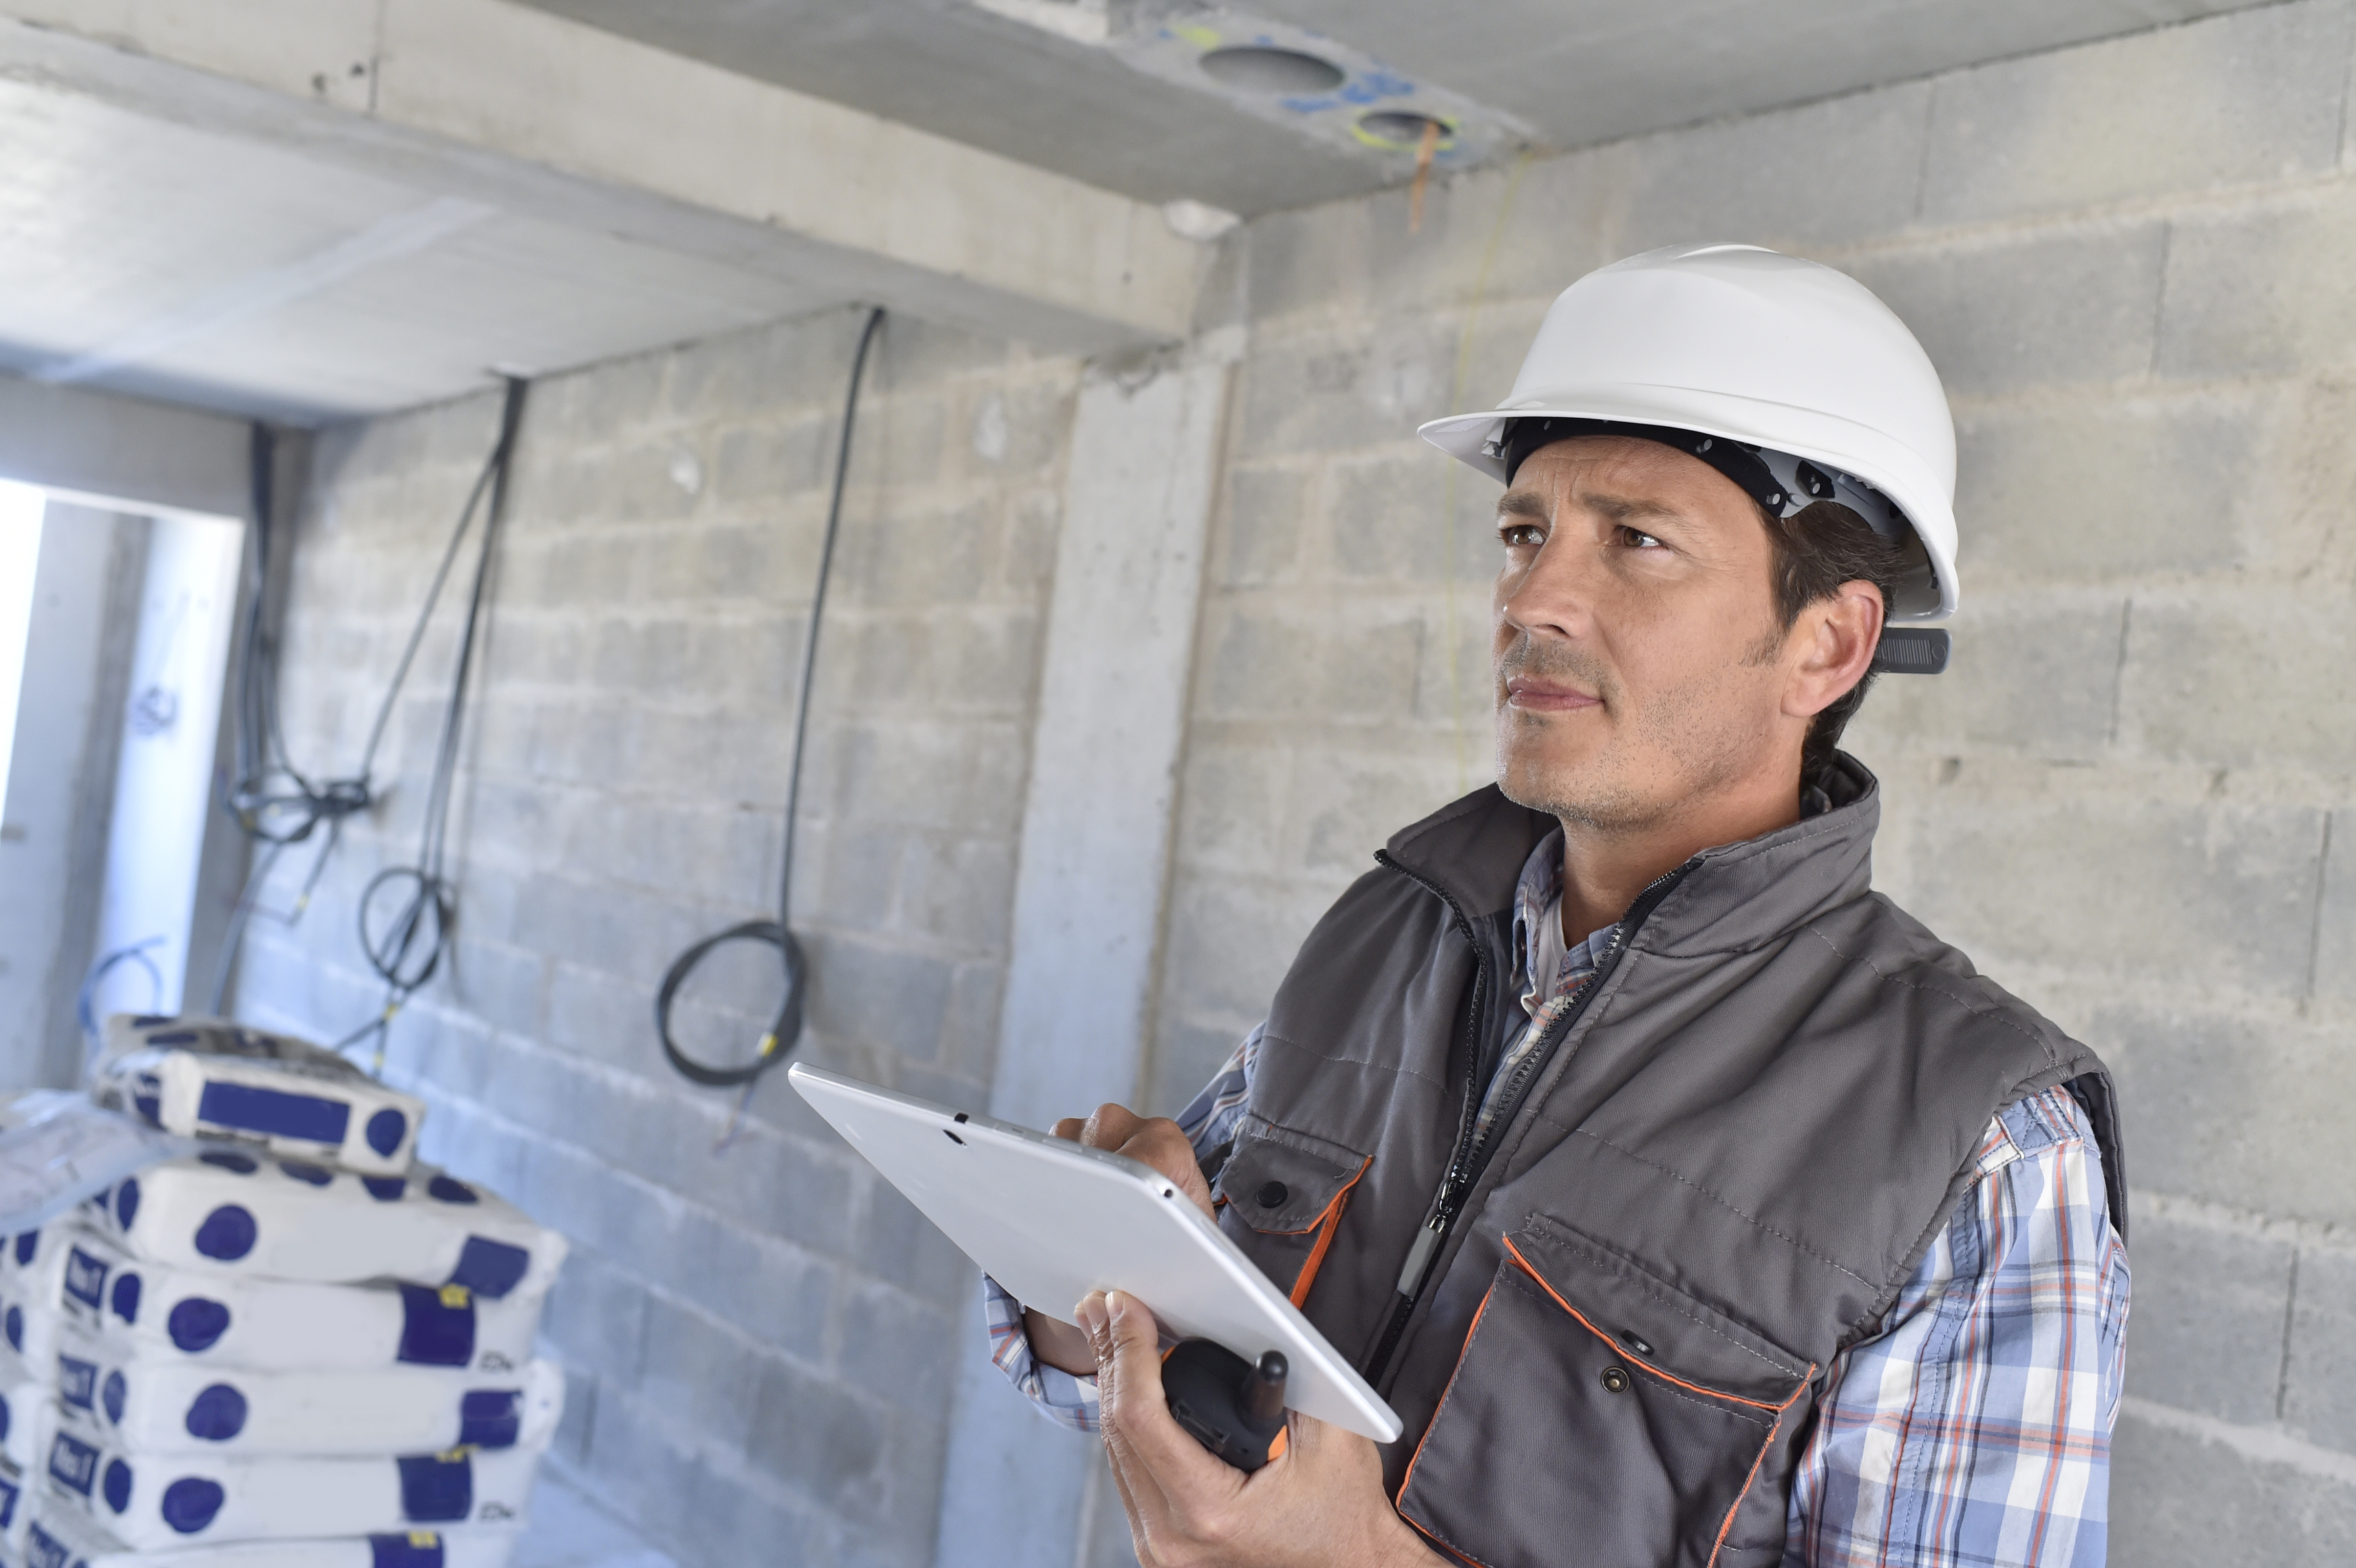 construction-manager-using-tablet-on-building-site-2